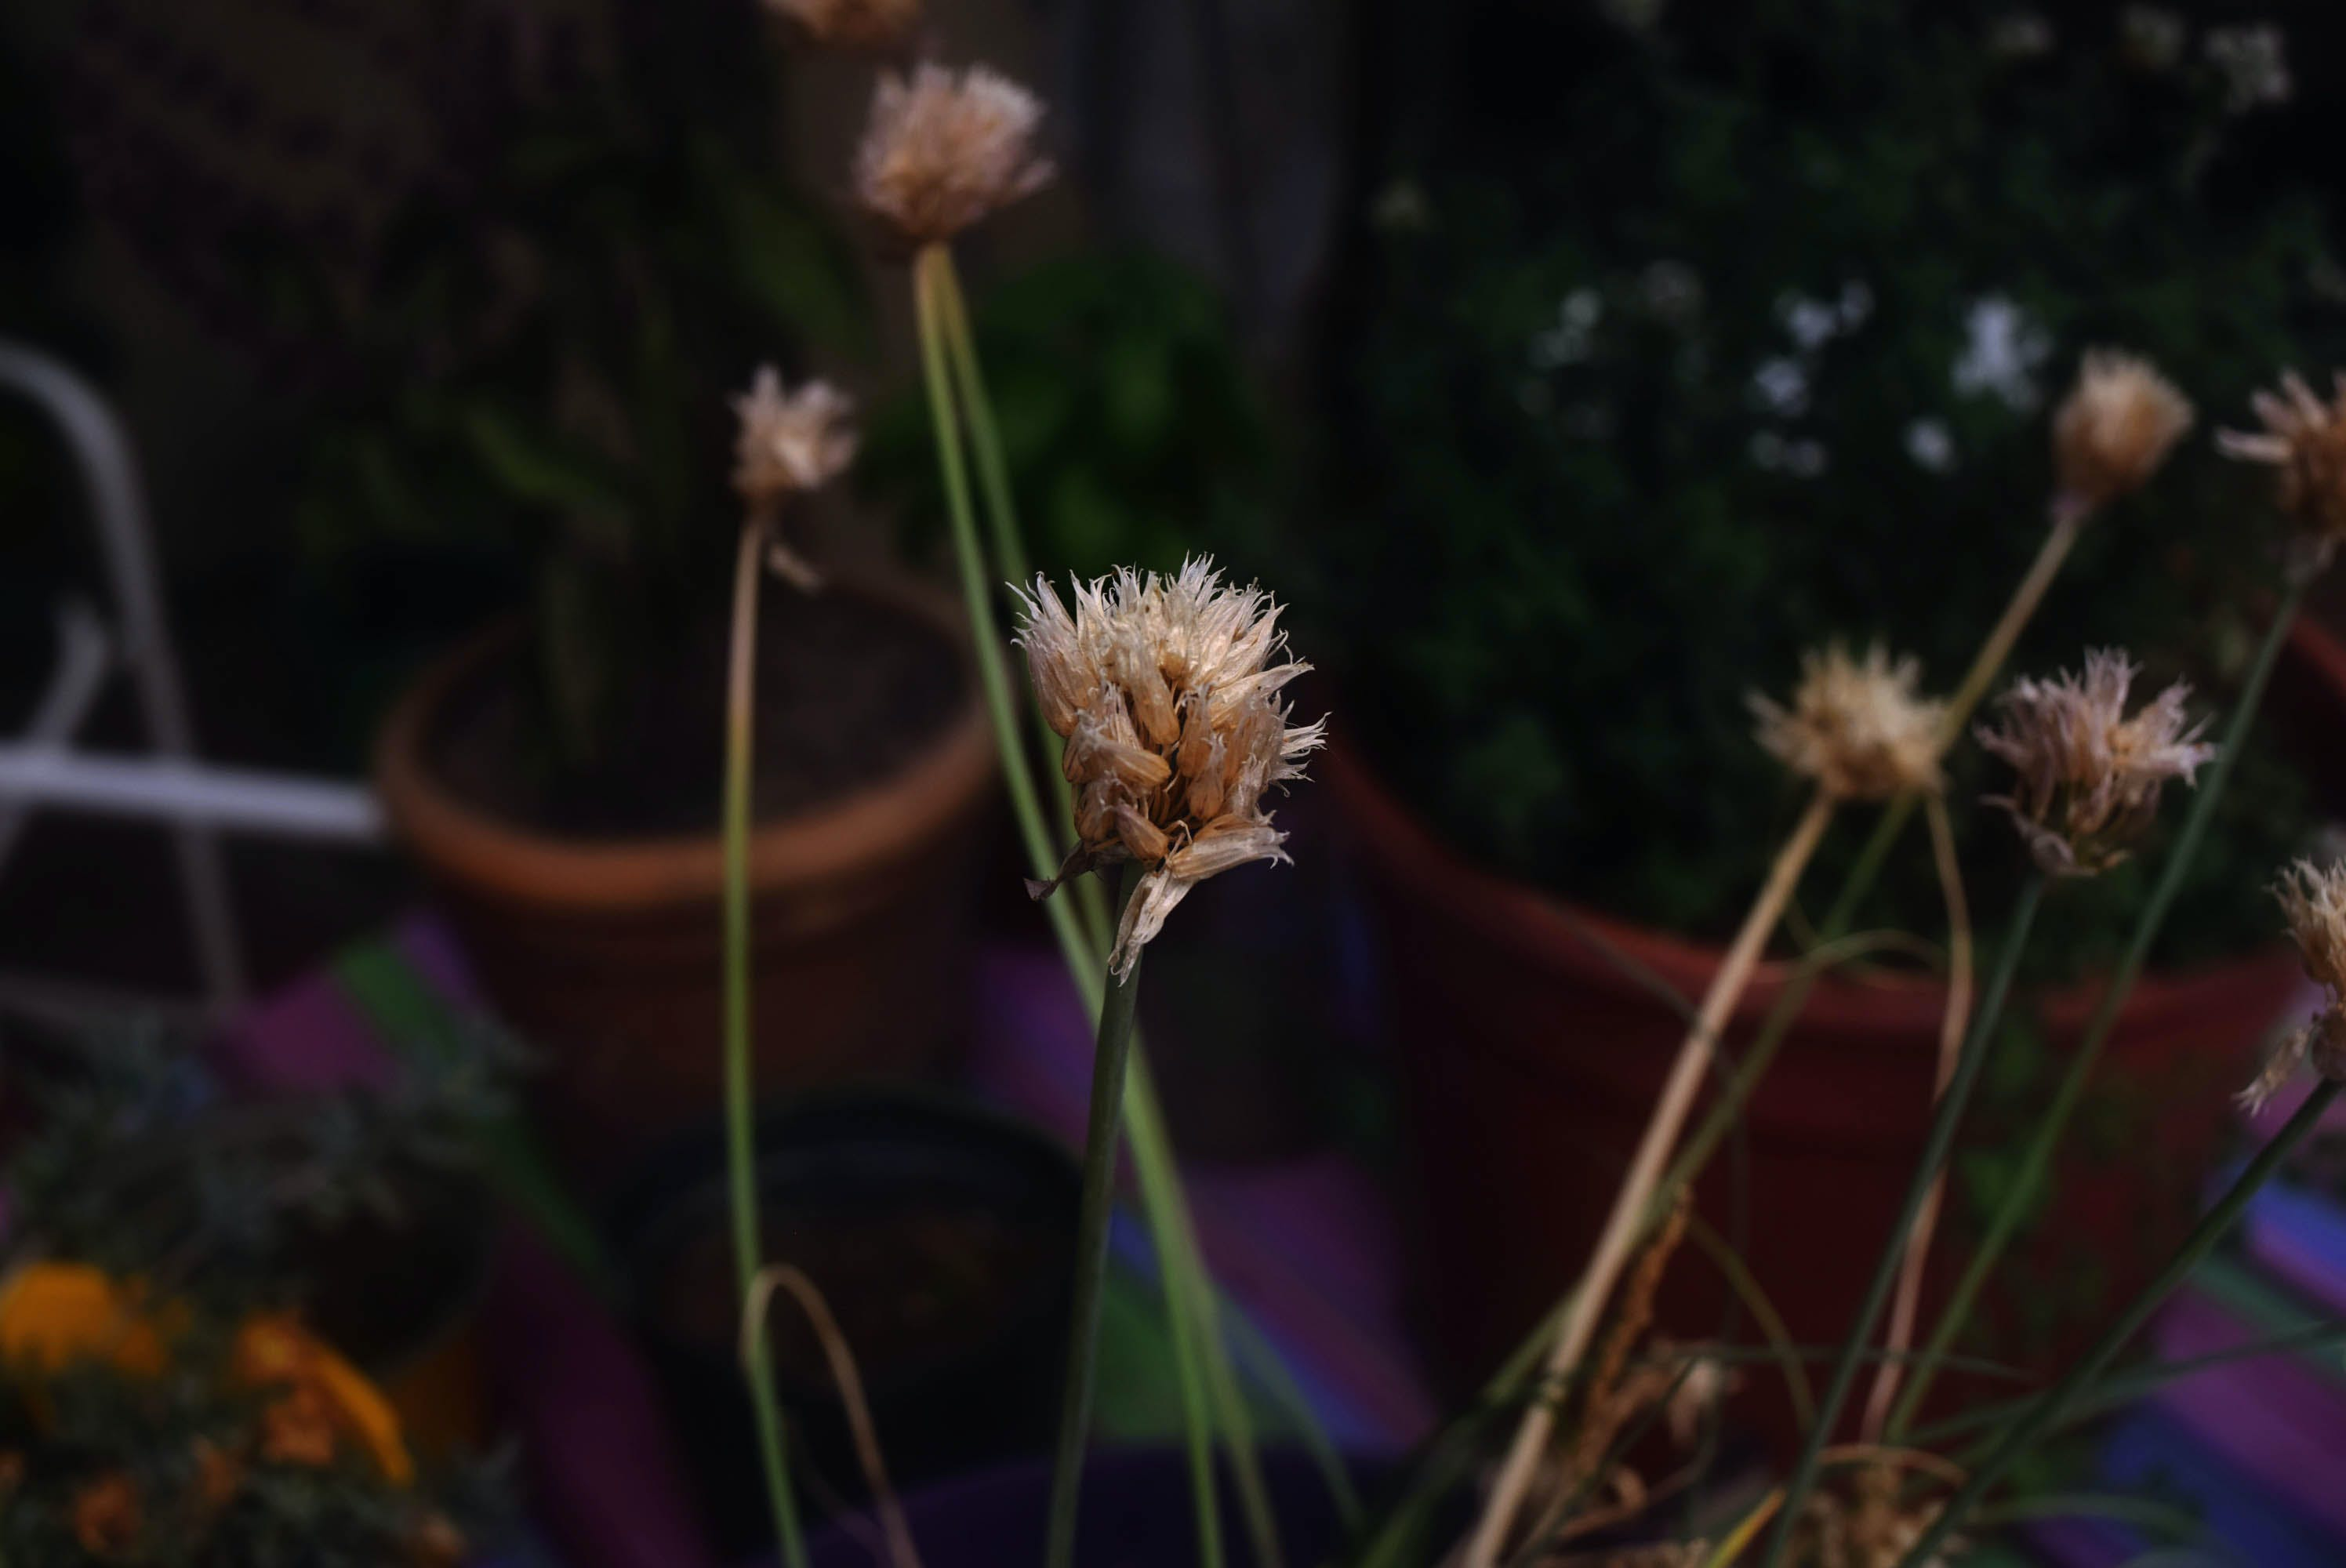 Free stock photo of autumn, autumn colors, beautiful flowers, dried flowers